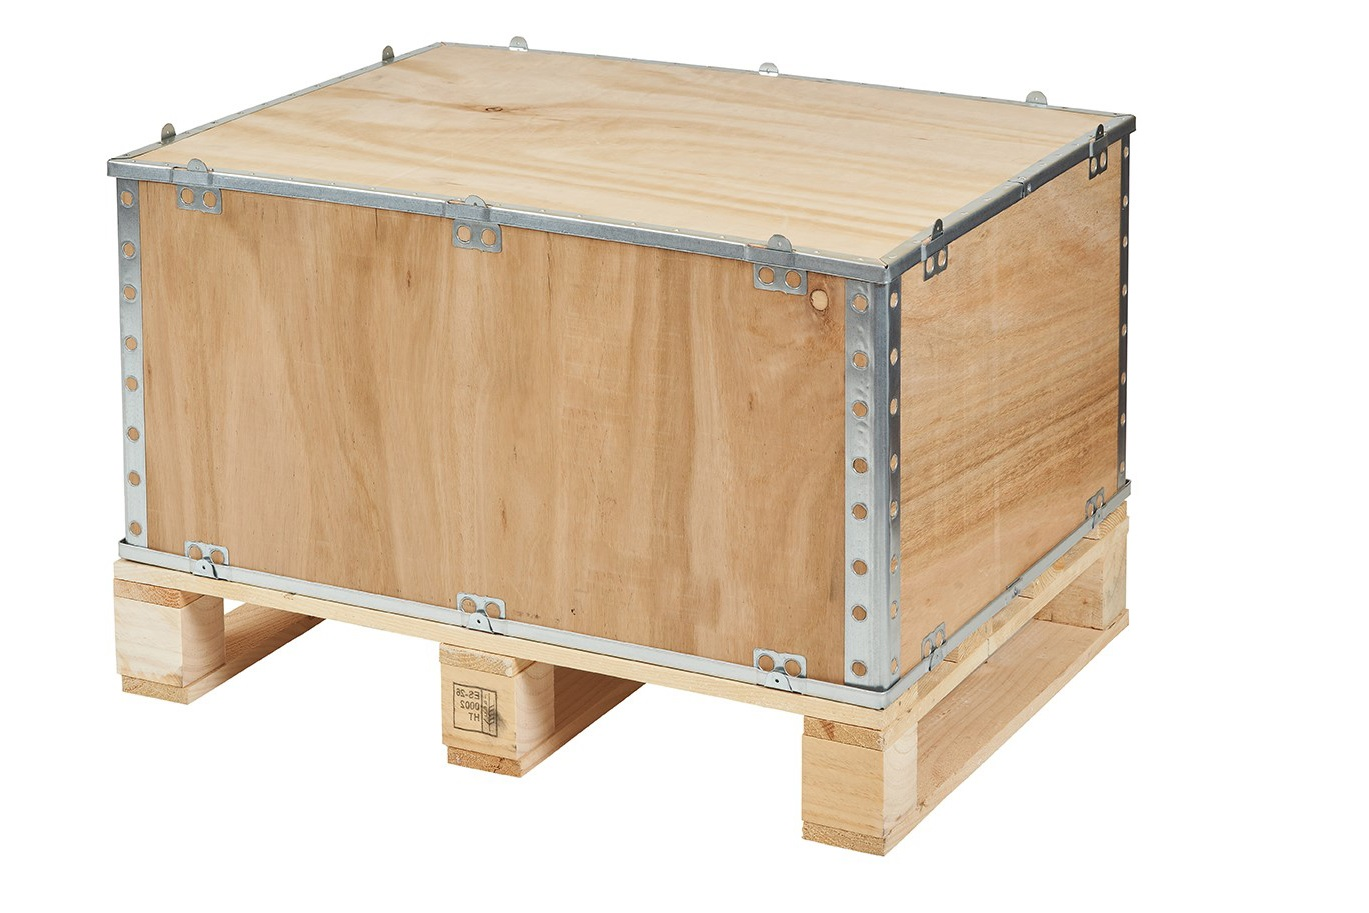 Folding wooden crate